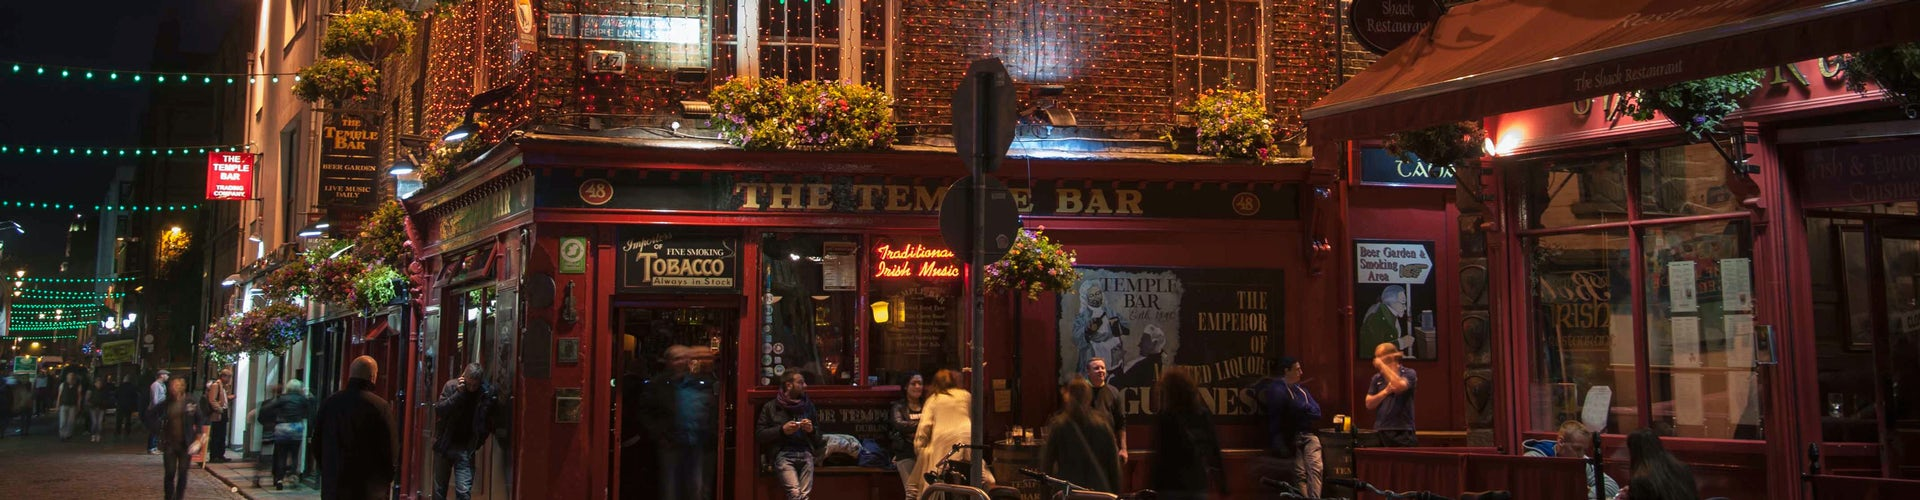 Tour Temple Bar Dublin 1